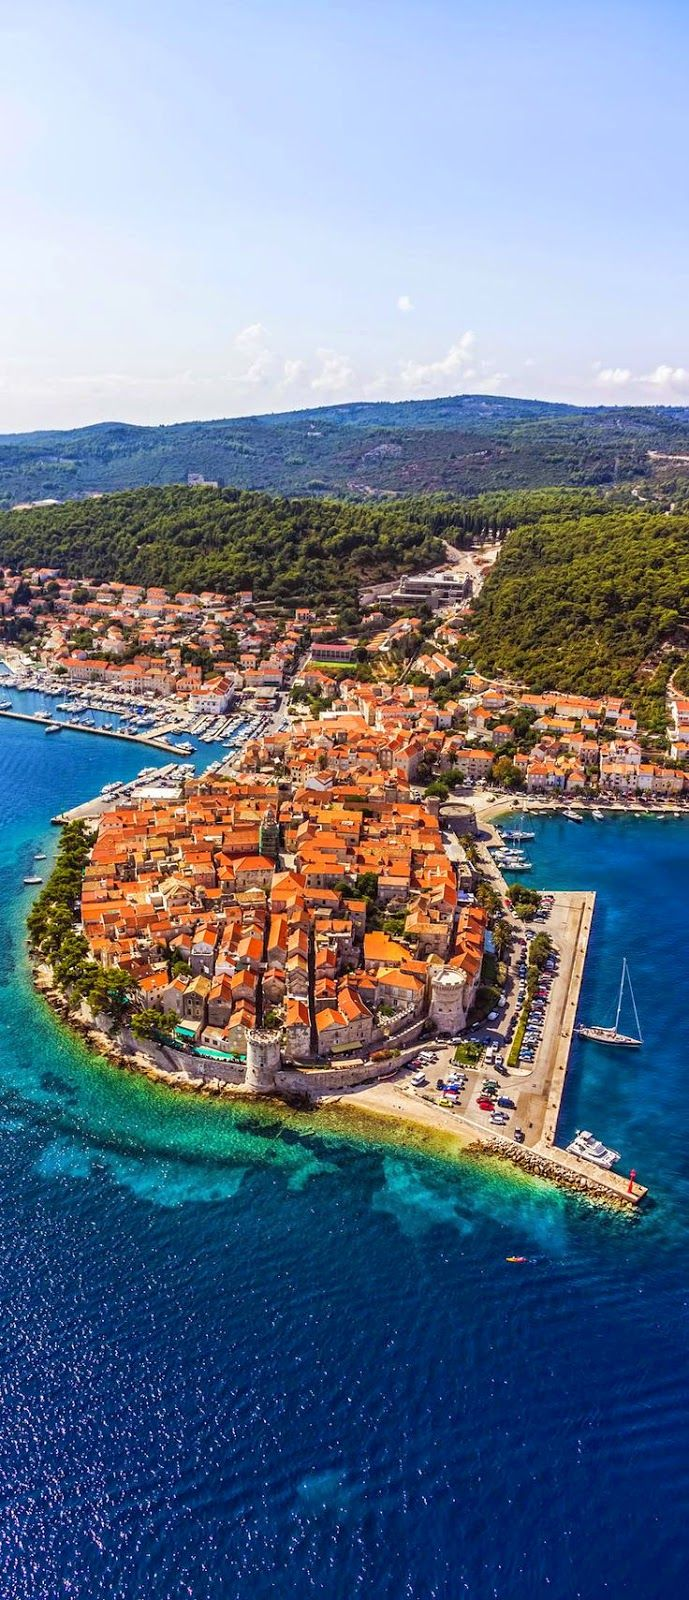 Amazing View of Korcula old town. Dubrovnik archipelago - Elaphites islands